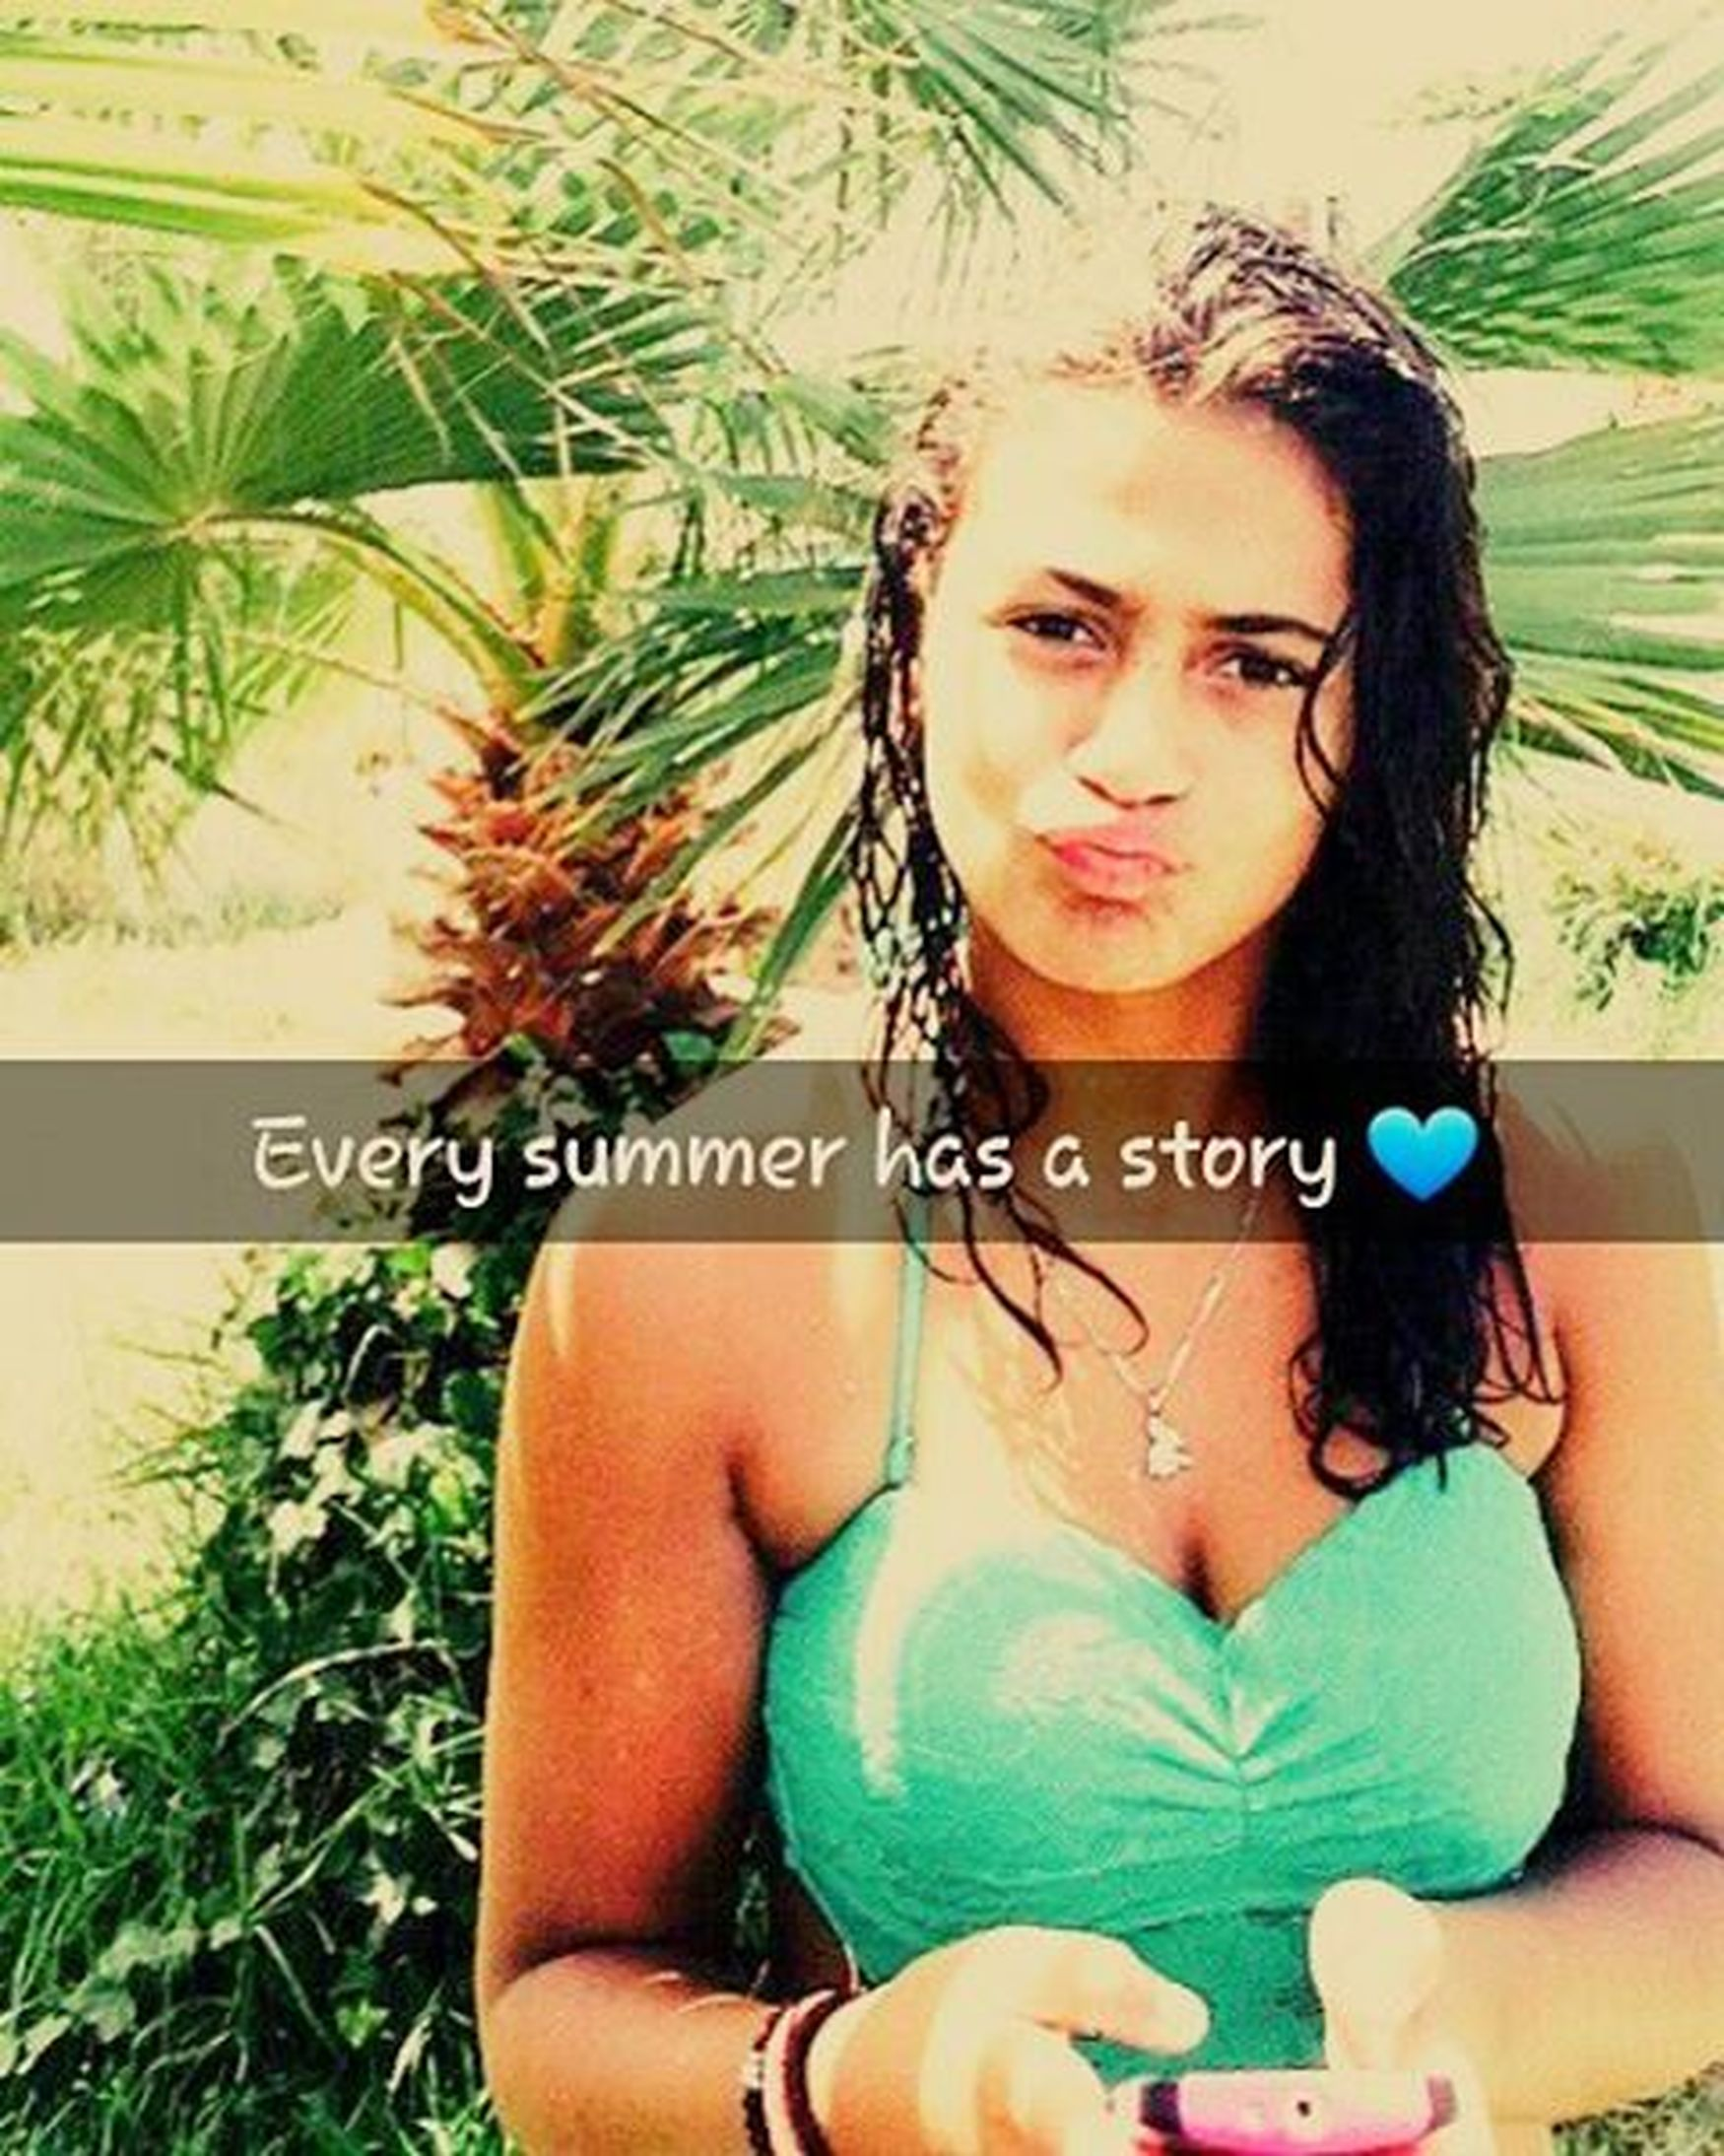 Summer2k15 Memories Swimmingpool Friends Love Happiness Cool Funny Party Imissusummer 💯👌